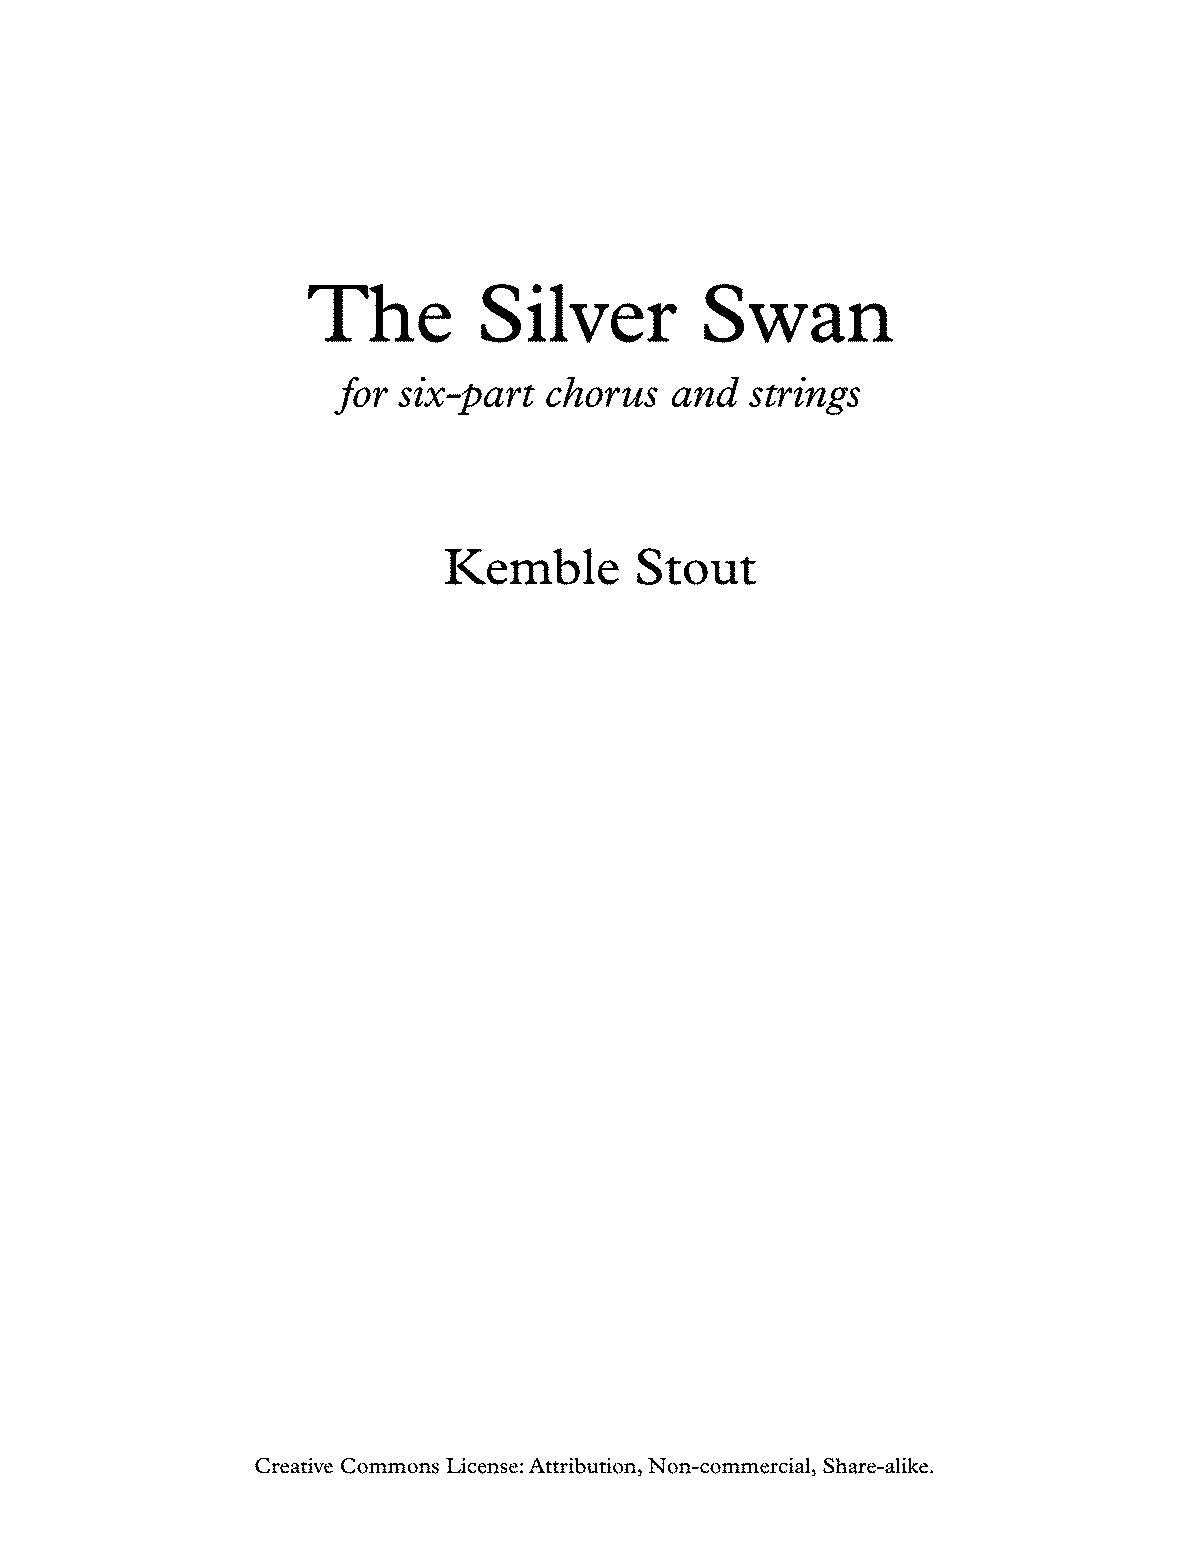 PMLP706163-The Silver Swan - score and parts.pdf